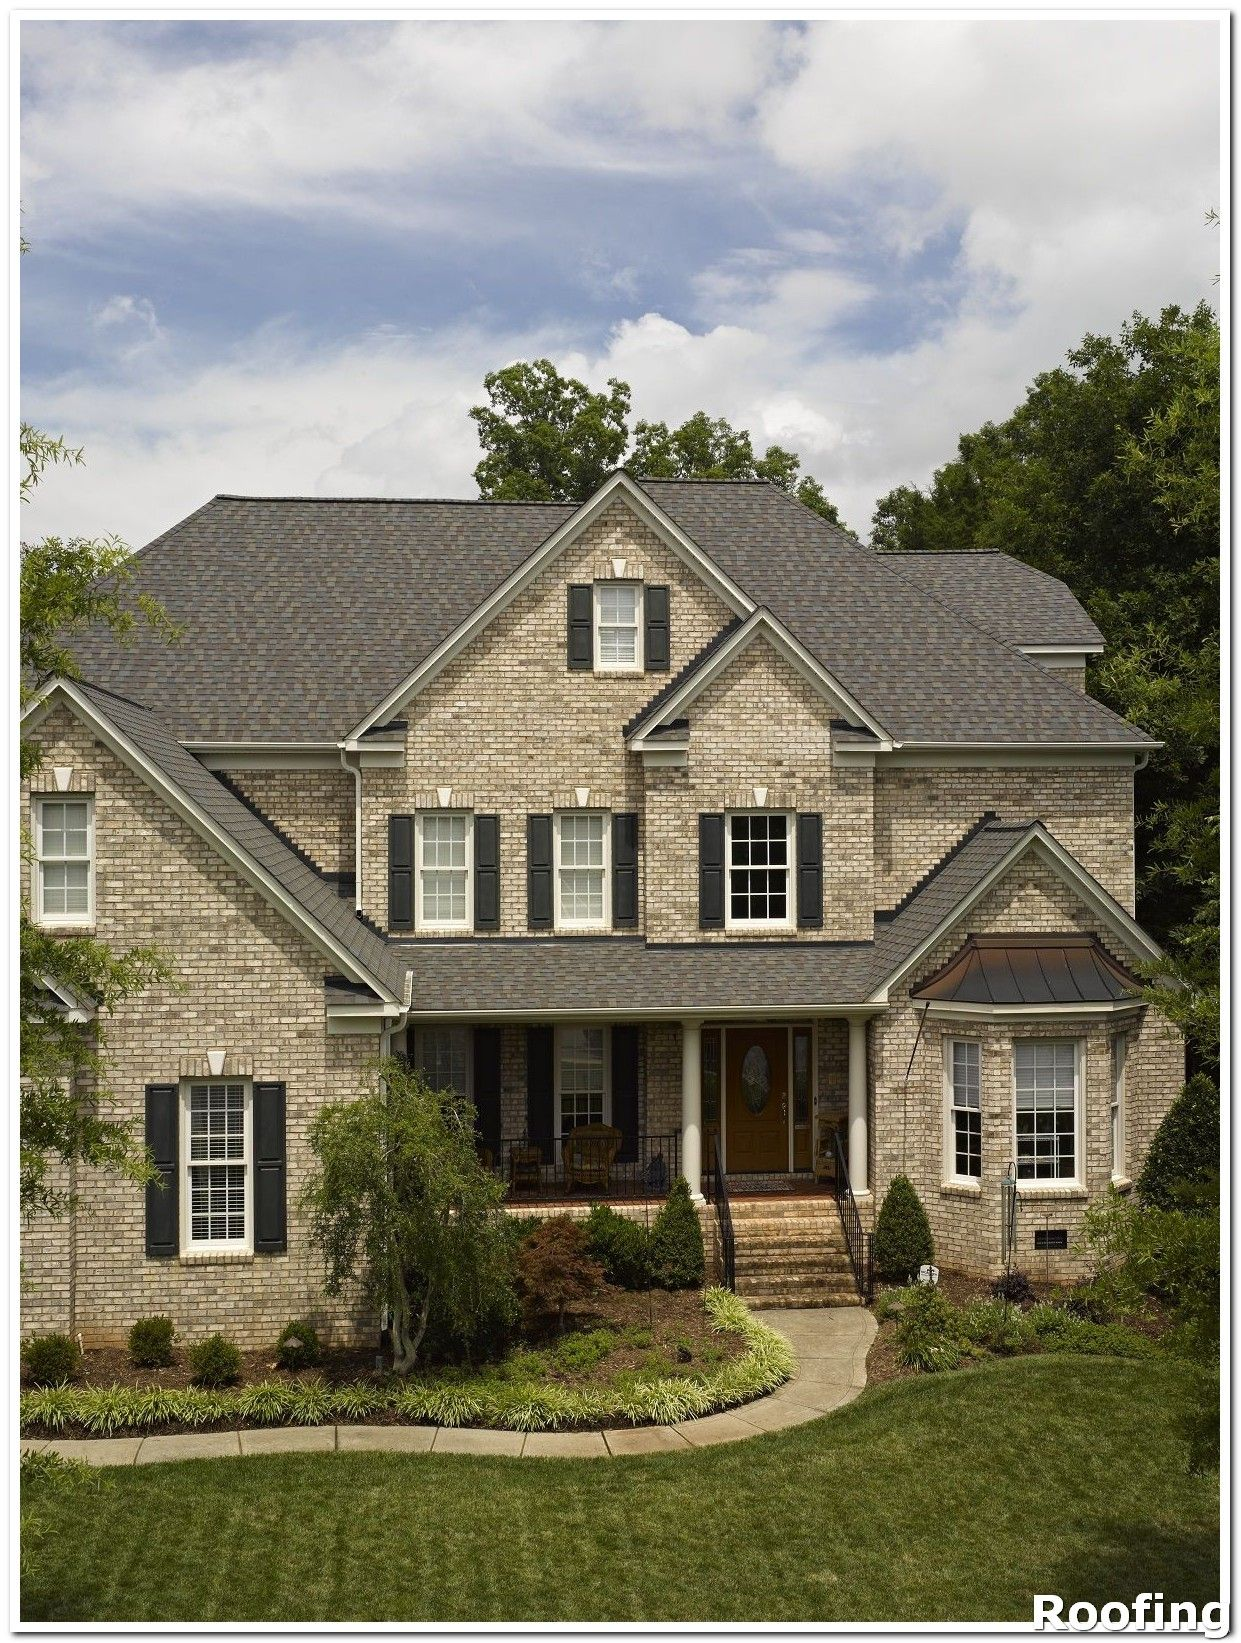 Roofing Shingles Replace Any Missing Shingles As Soon As You Notice That They Have Come Loose On Cape Cod Style House Residential Roofing Shingle Colors